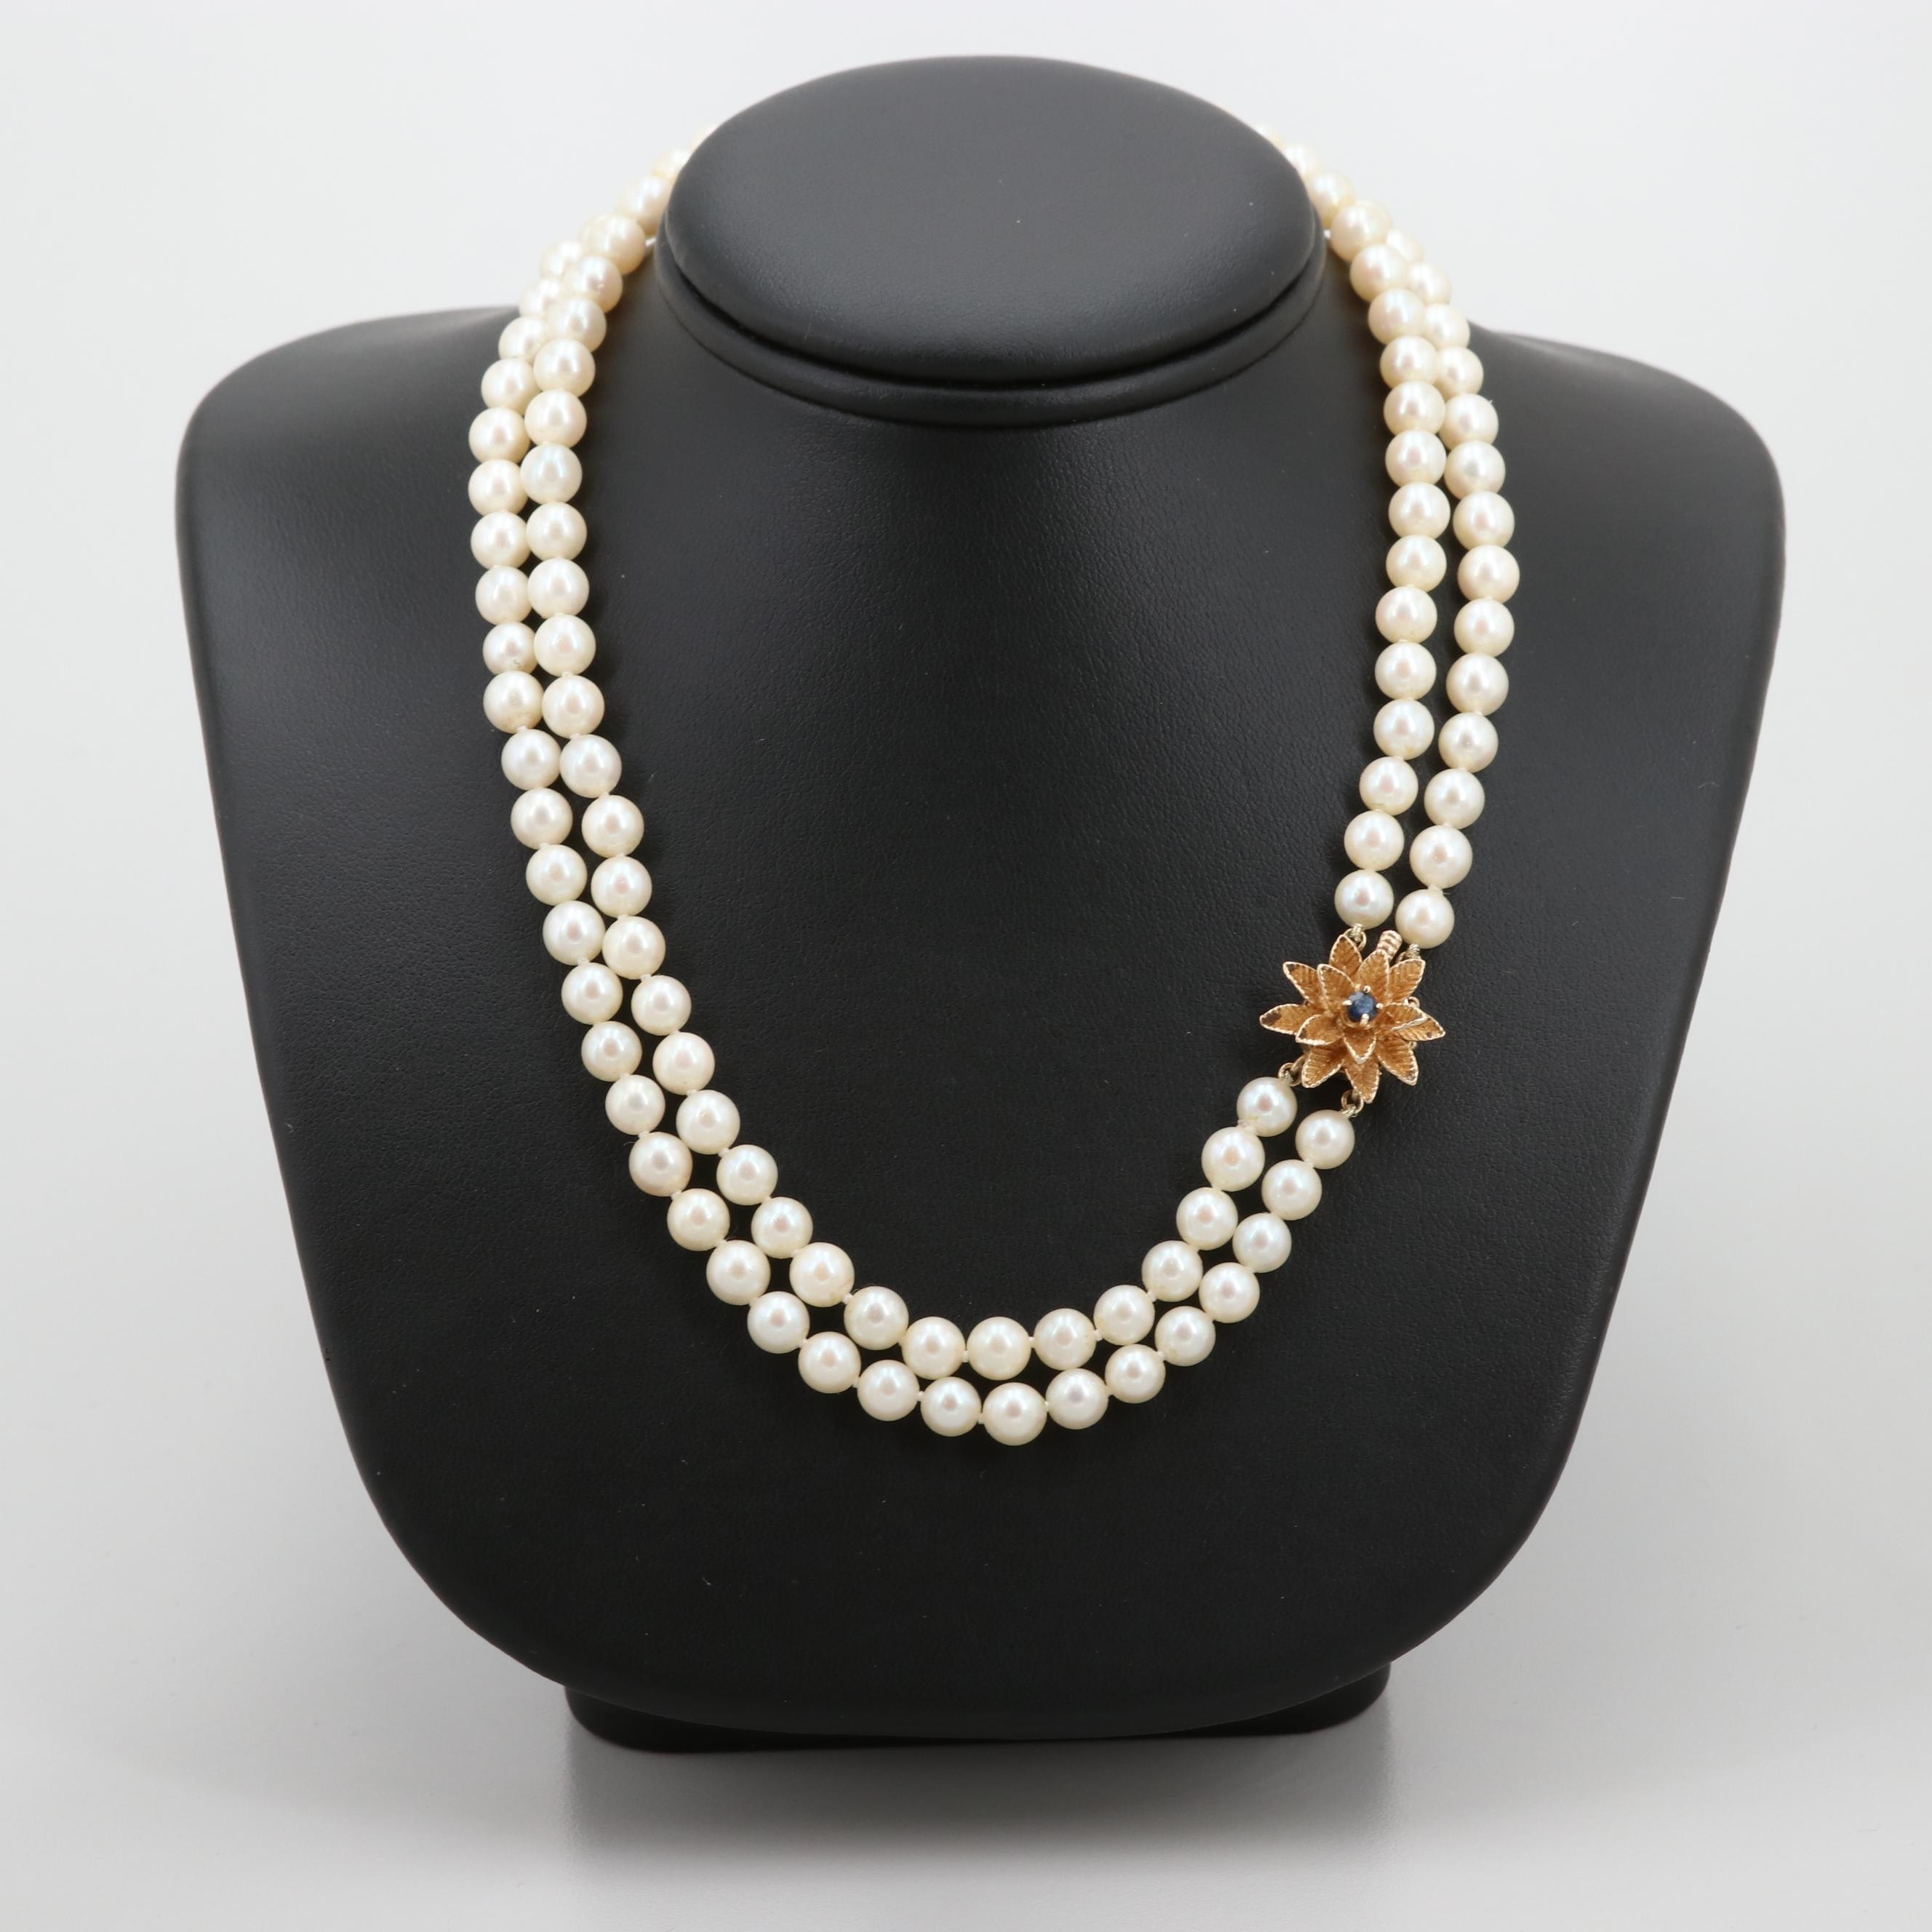 14K Yellow Gold Cultured Pearl Double Strand Necklace with Sapphire Flower Clasp